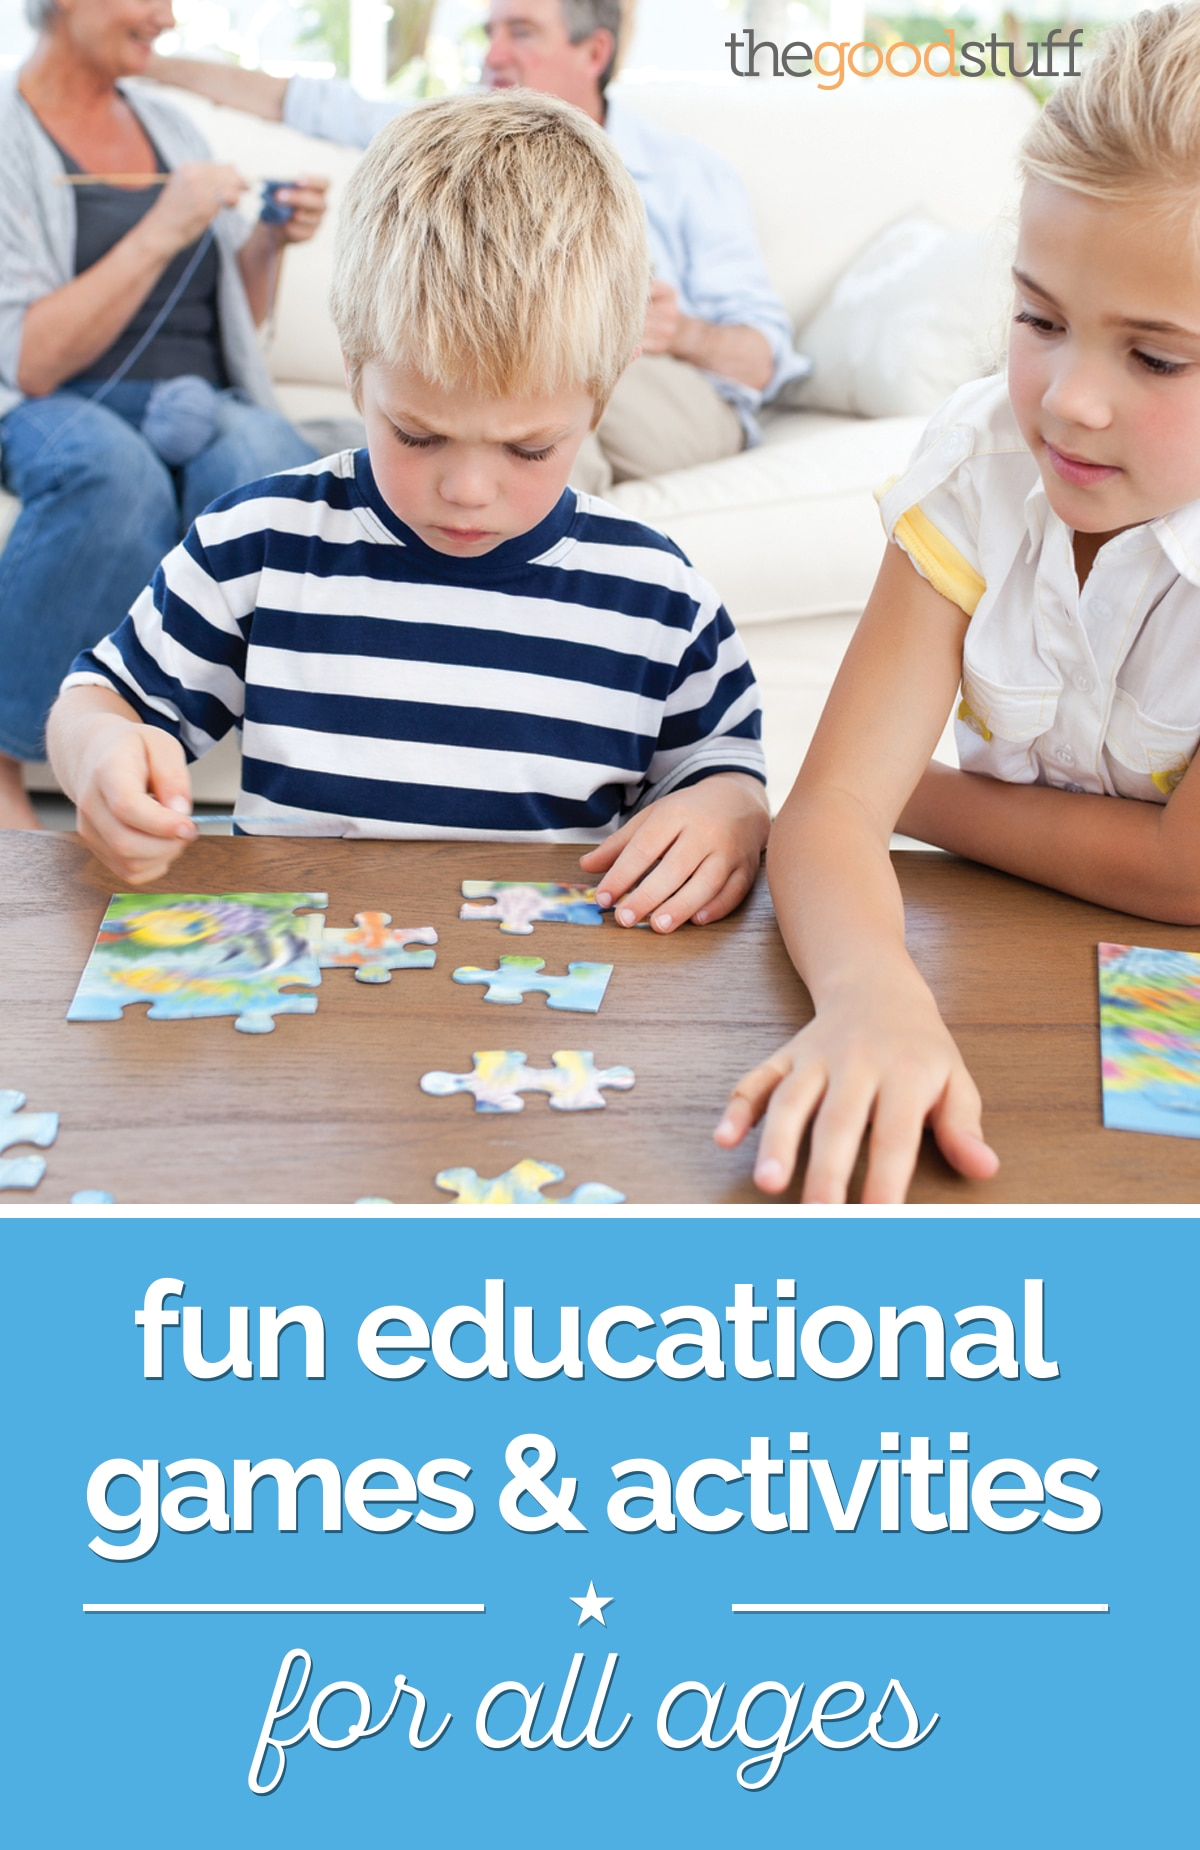 Fun Educational Games & Activities for All Ages | thegoodstuff